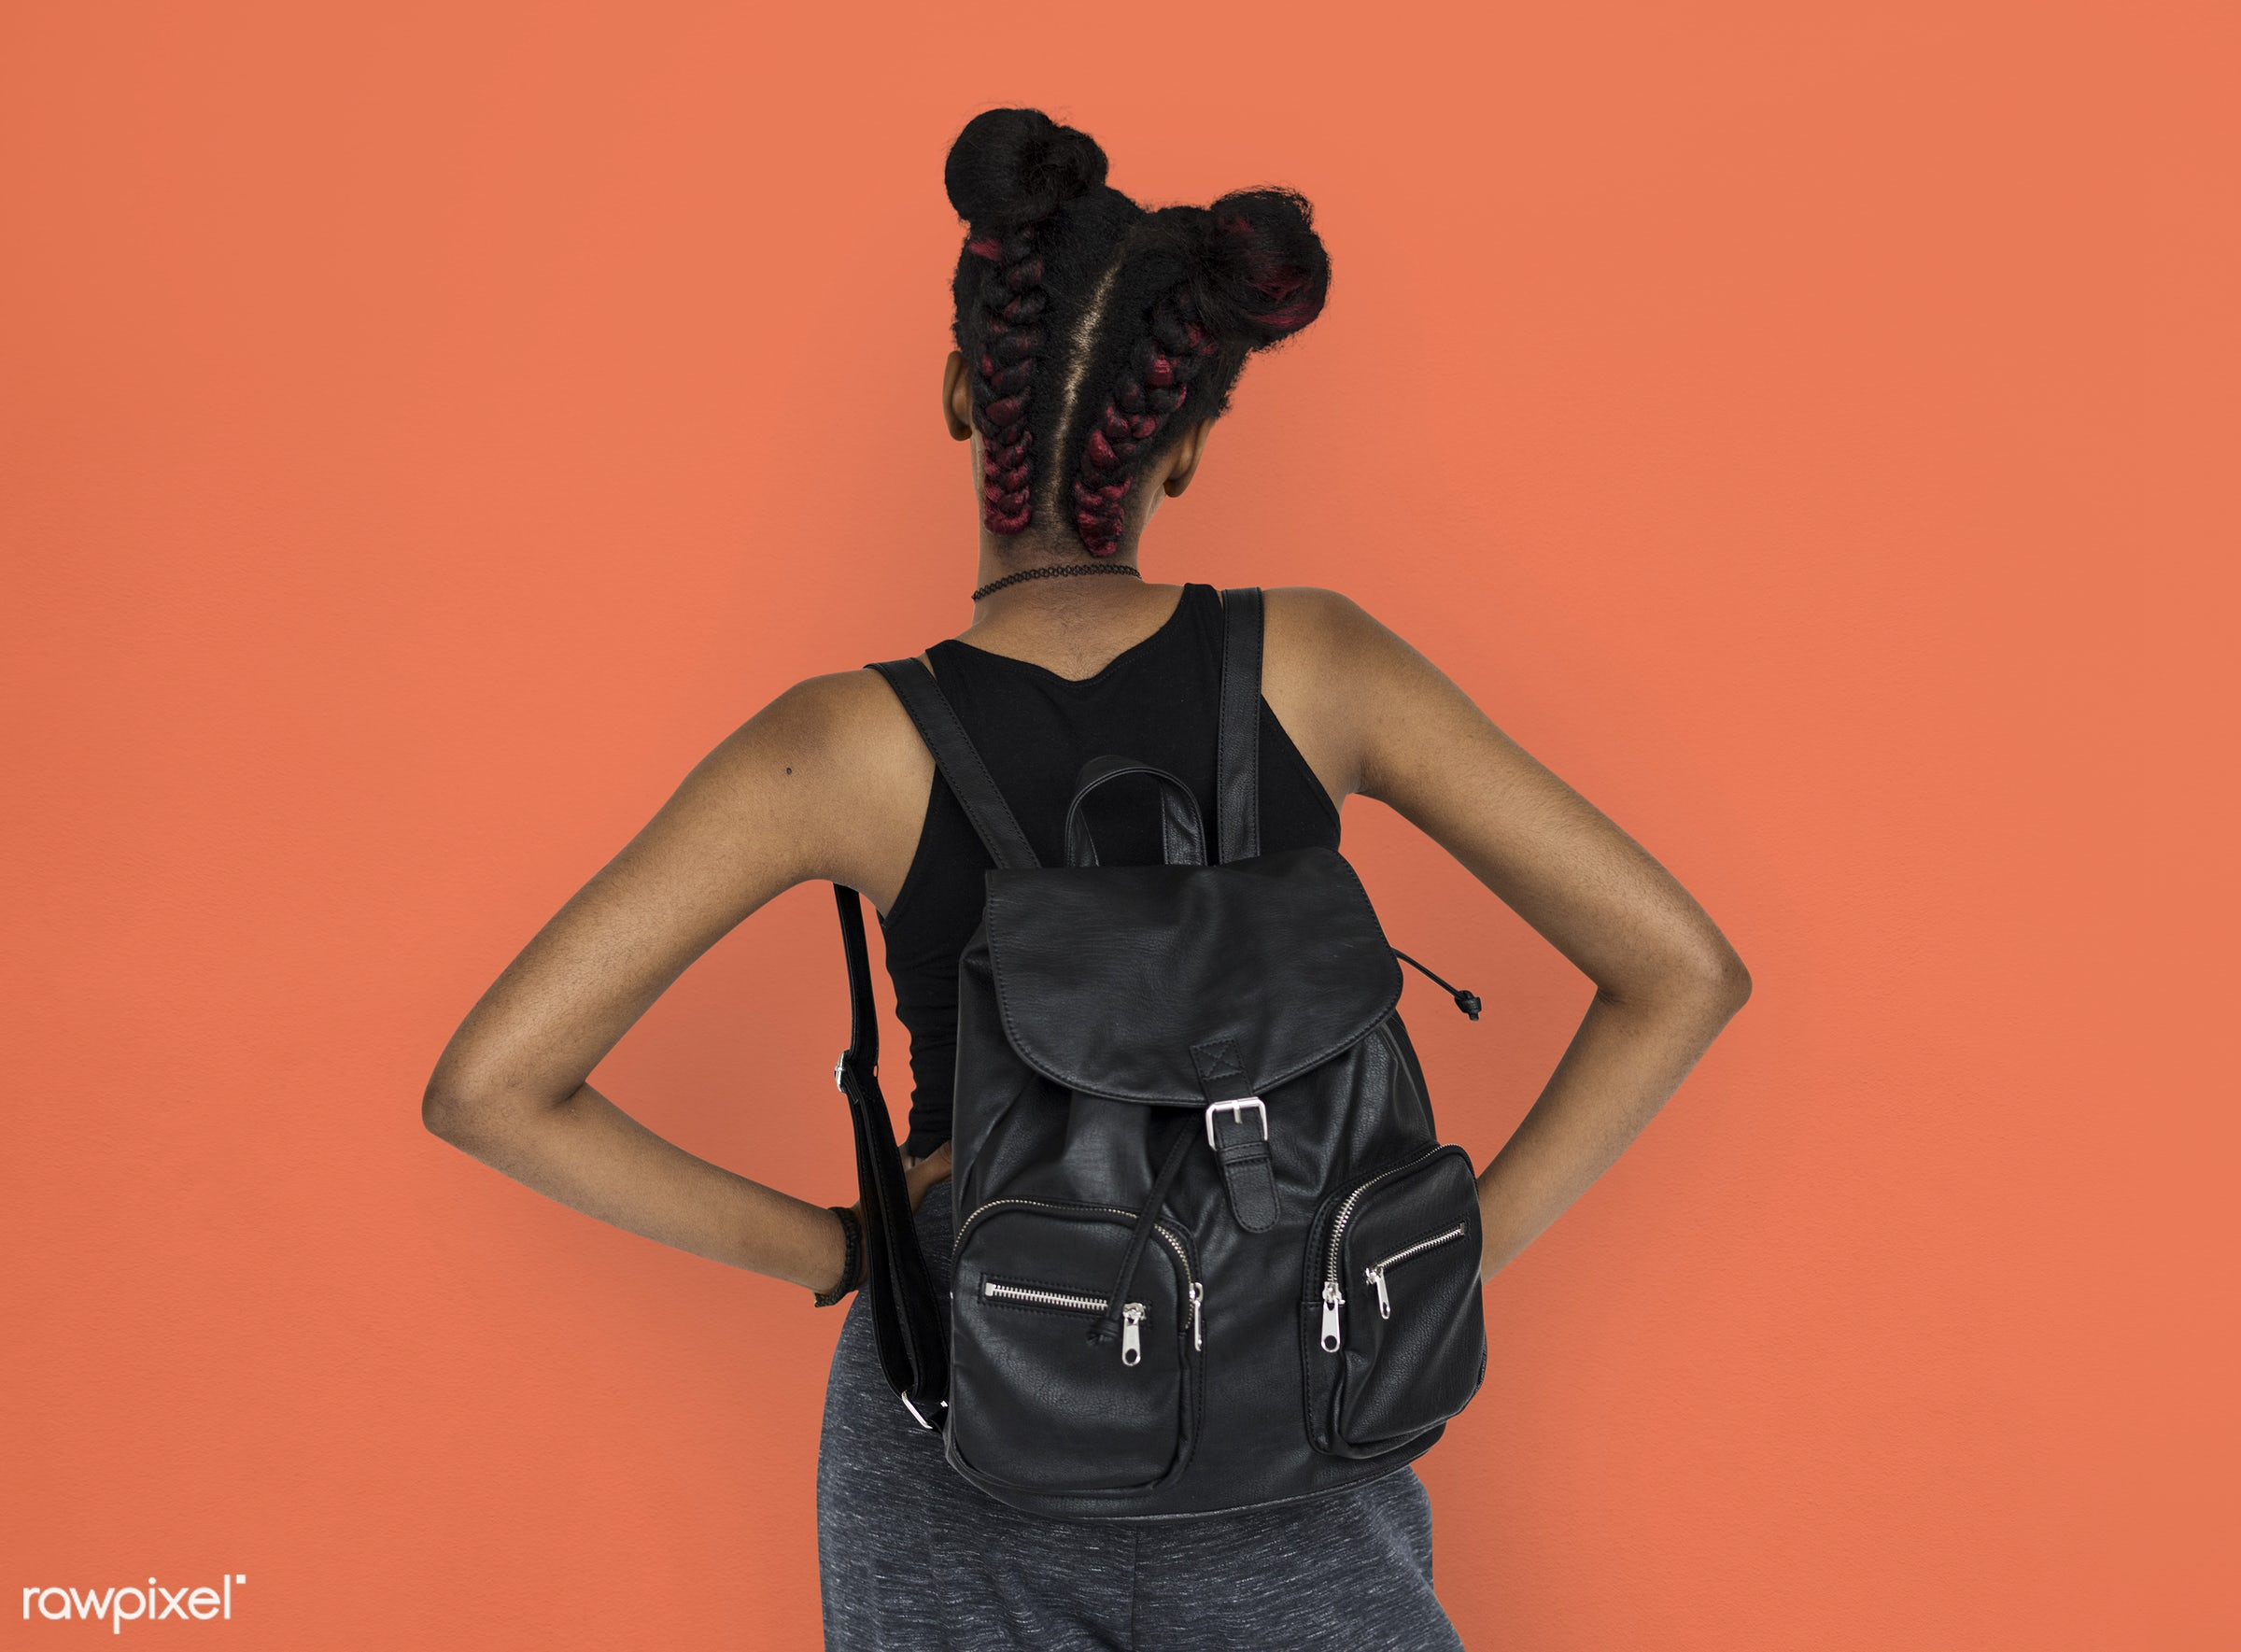 studio, person, african, people, girl, style, woman, lifestyle, casual, backpack, abstract, isolated, rear view, orange,...